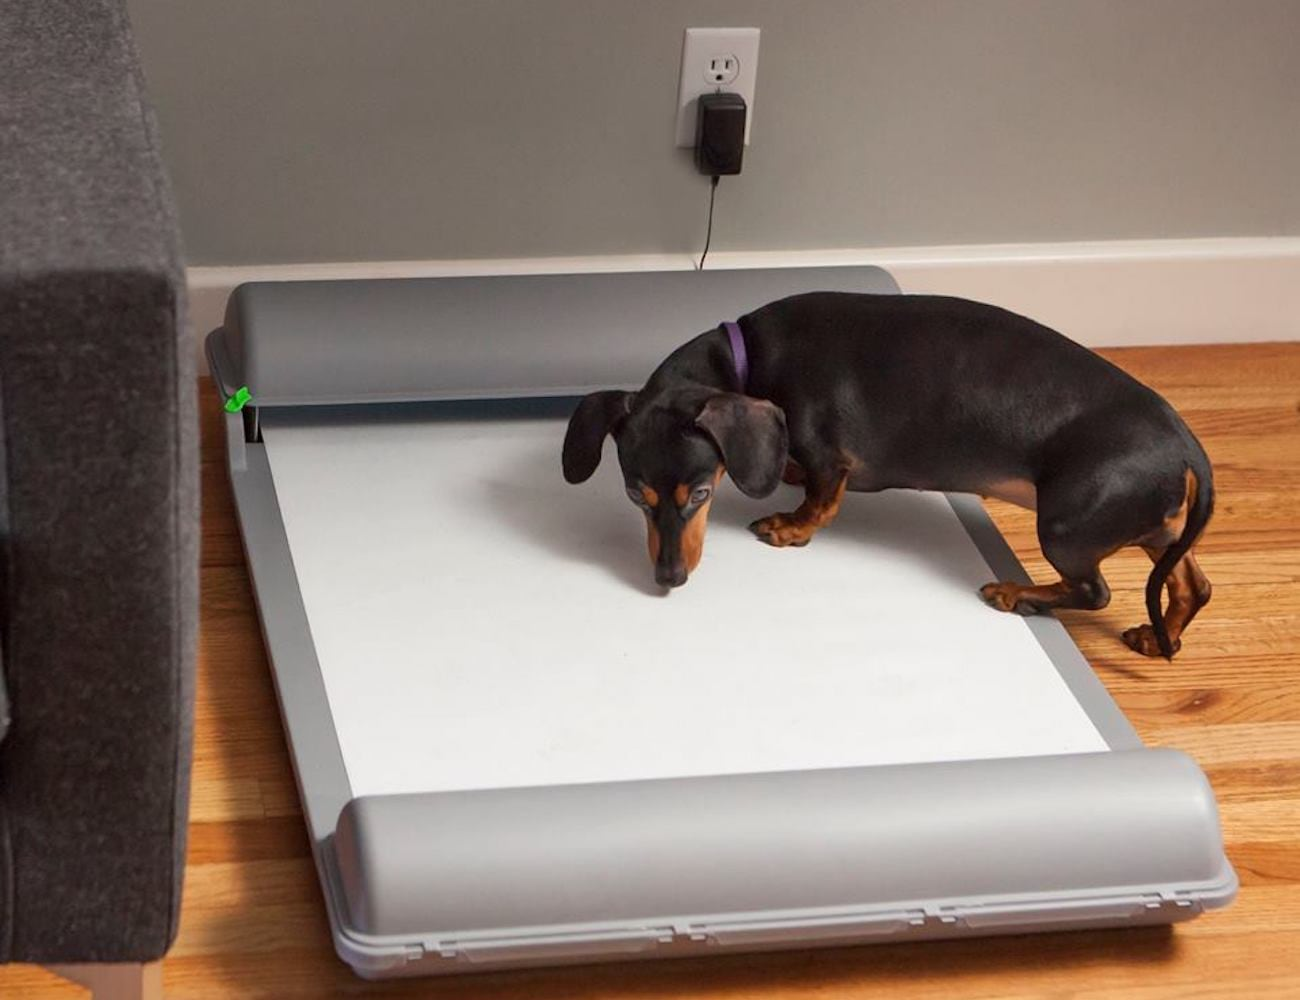 BrilliantPad Self-Cleaning Dog Pad